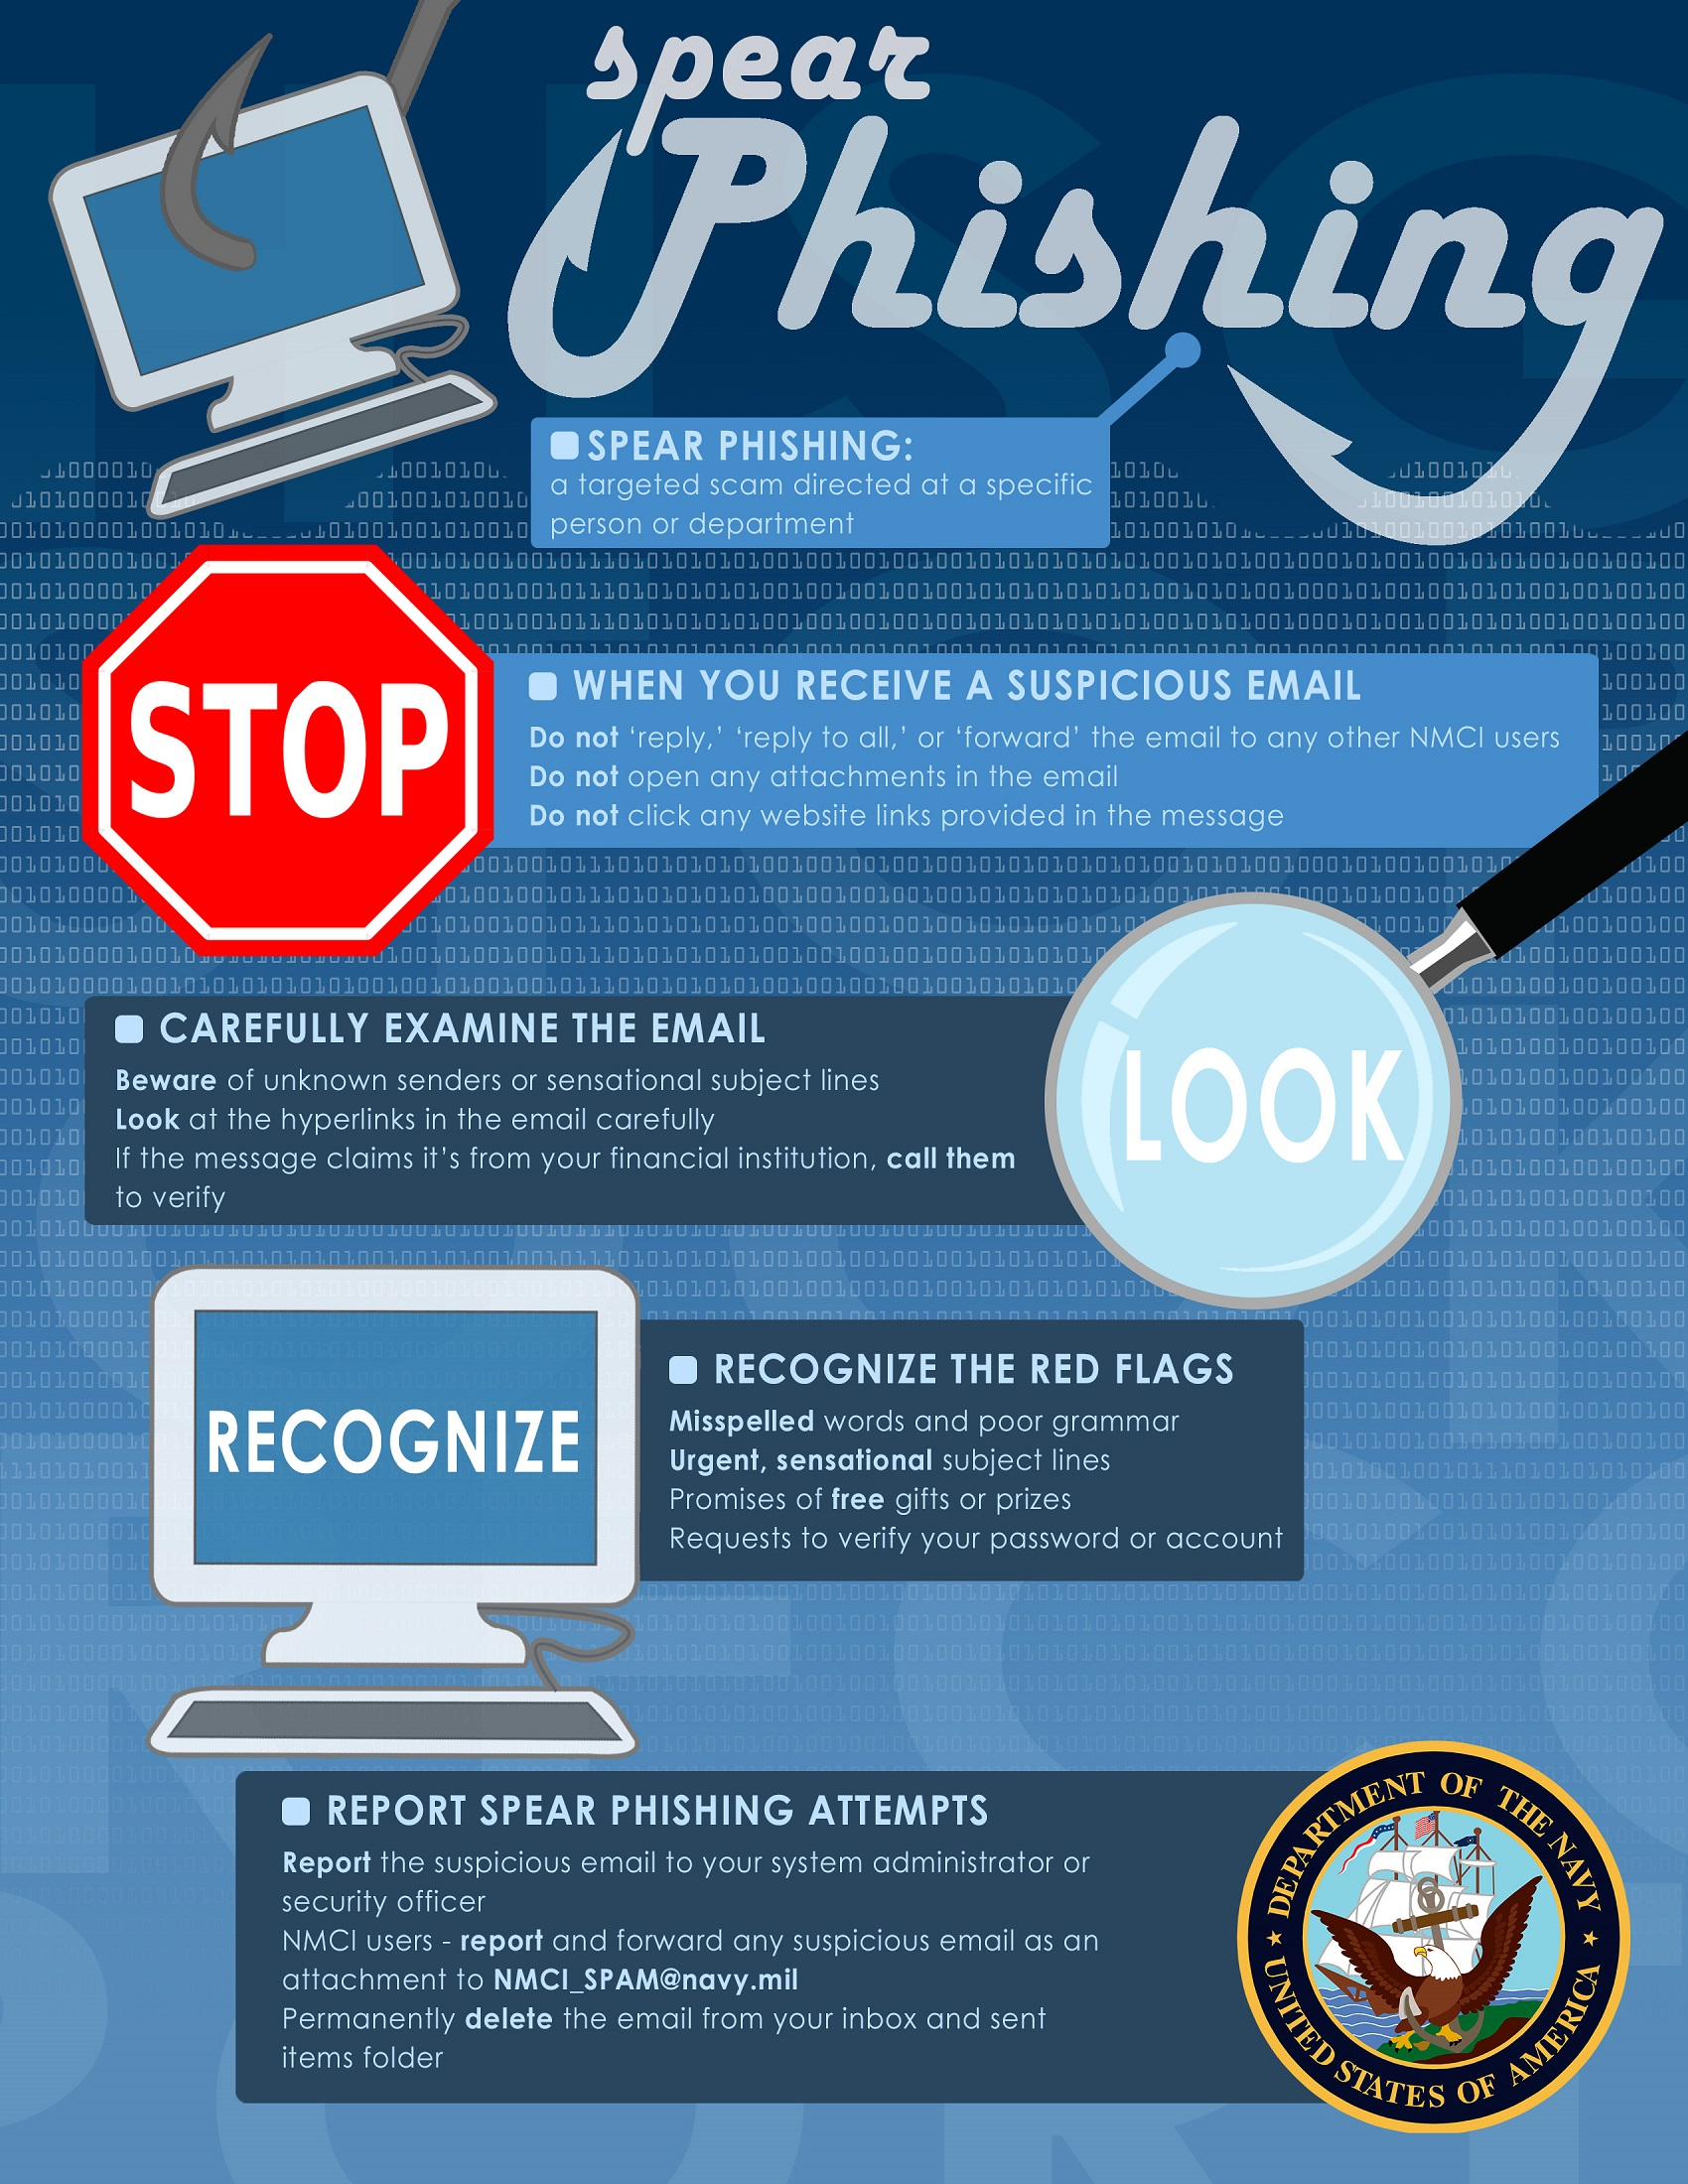 Difference between Phishing and Spear Phishing